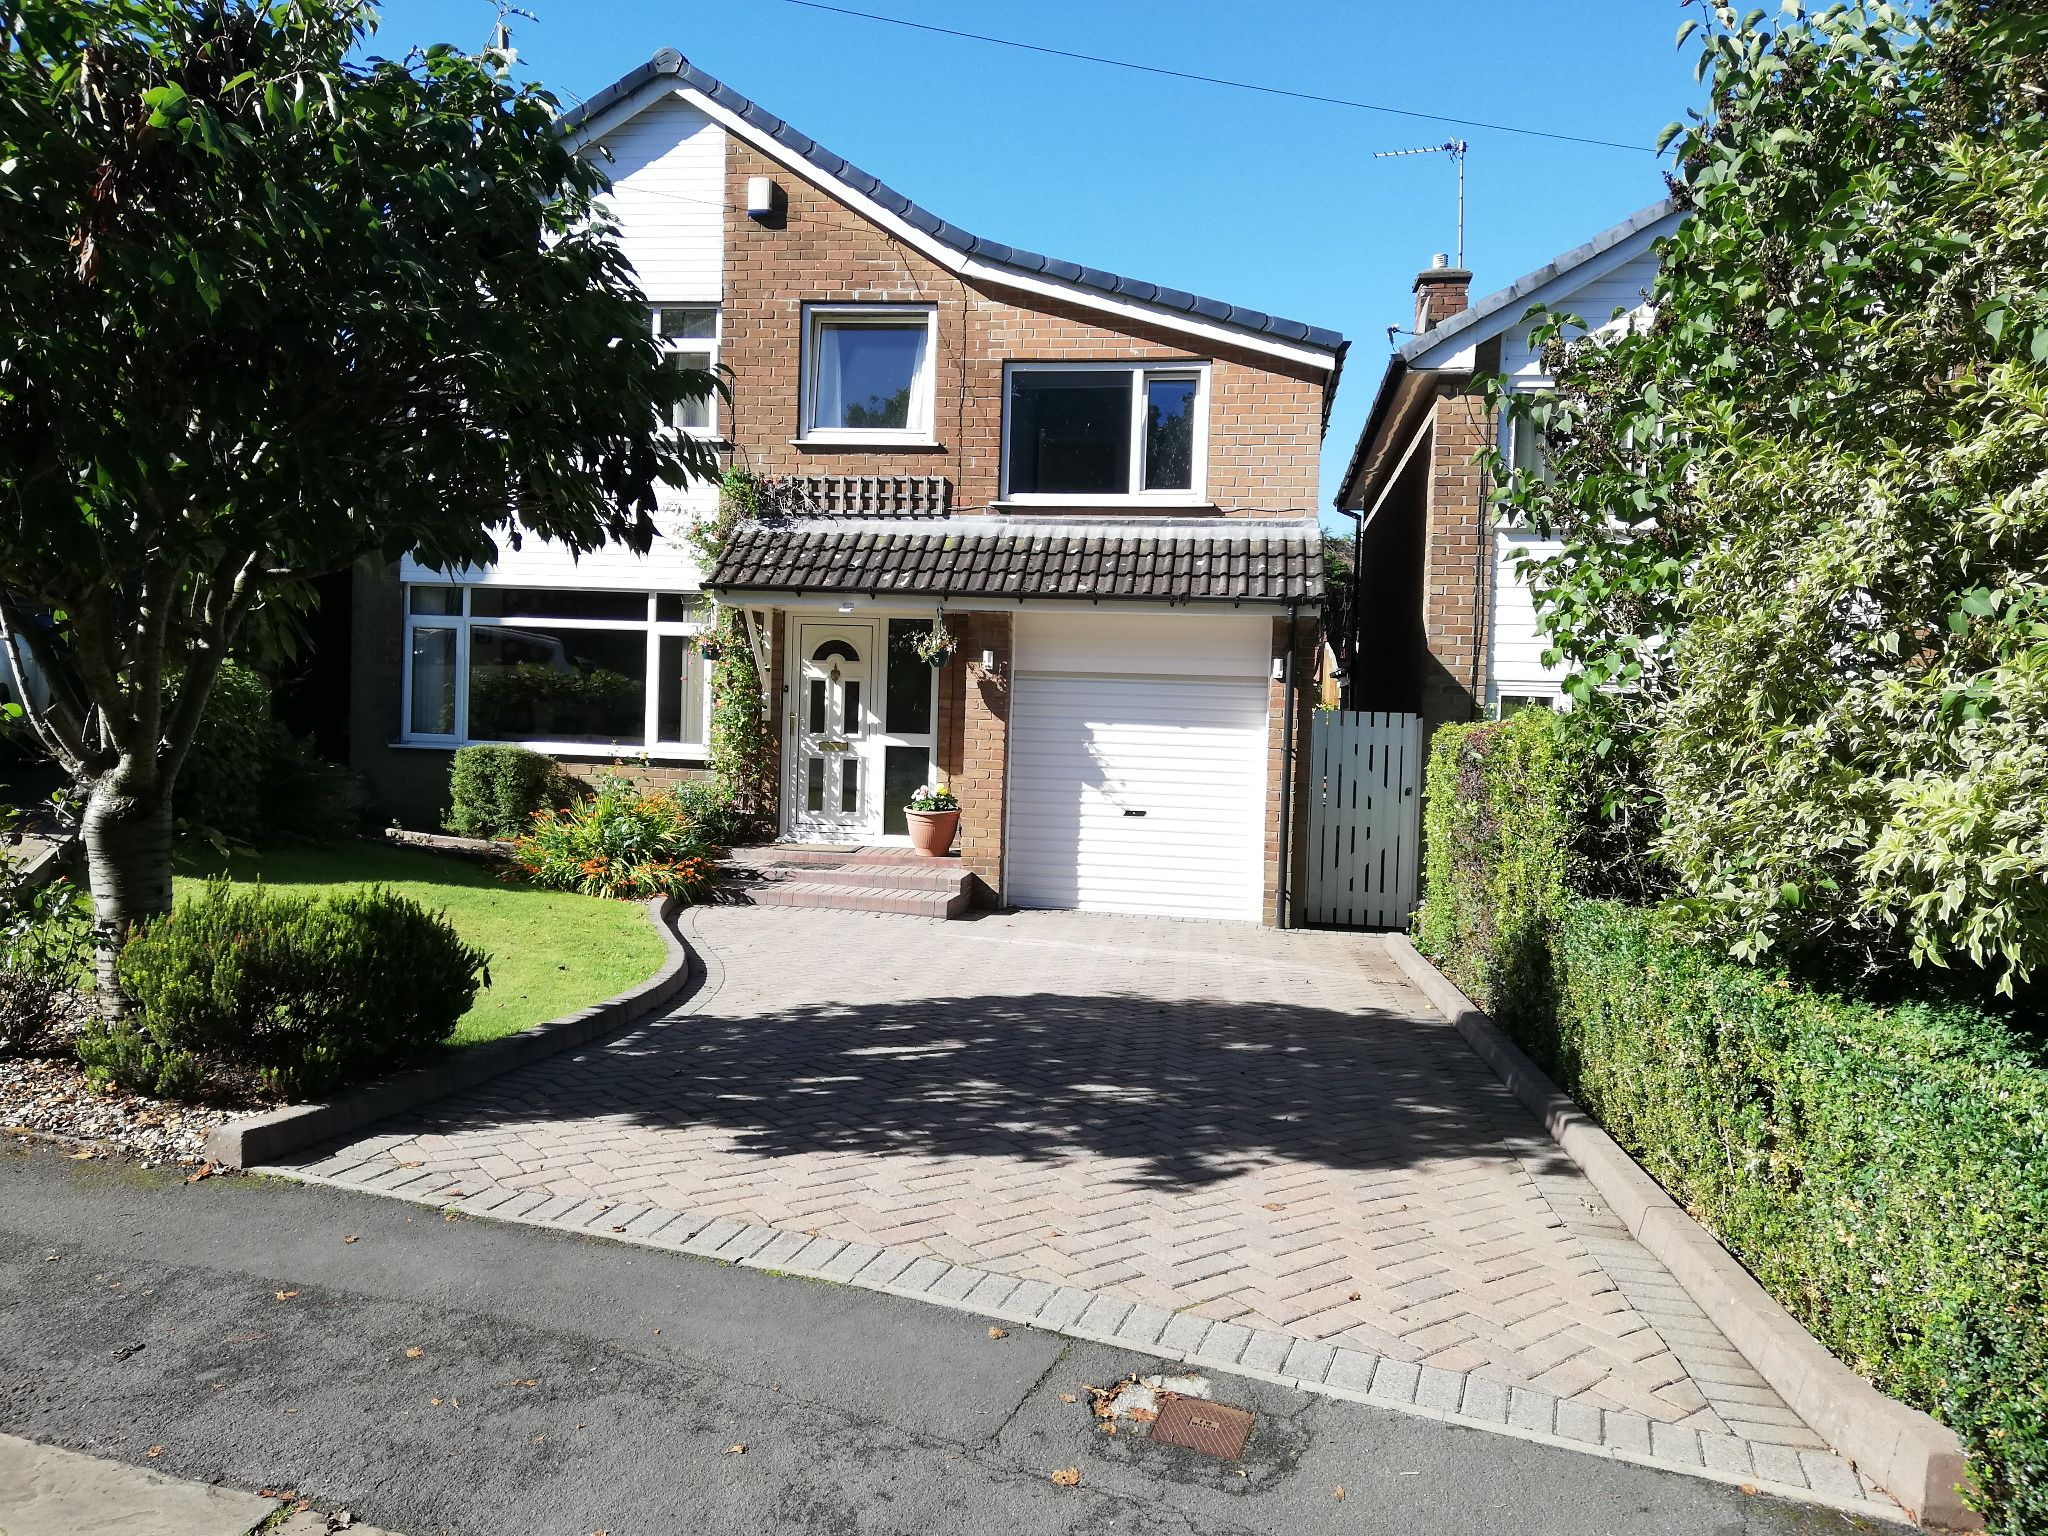 5 bedroom detached house For Sale in Brighouse - Main blue sky.